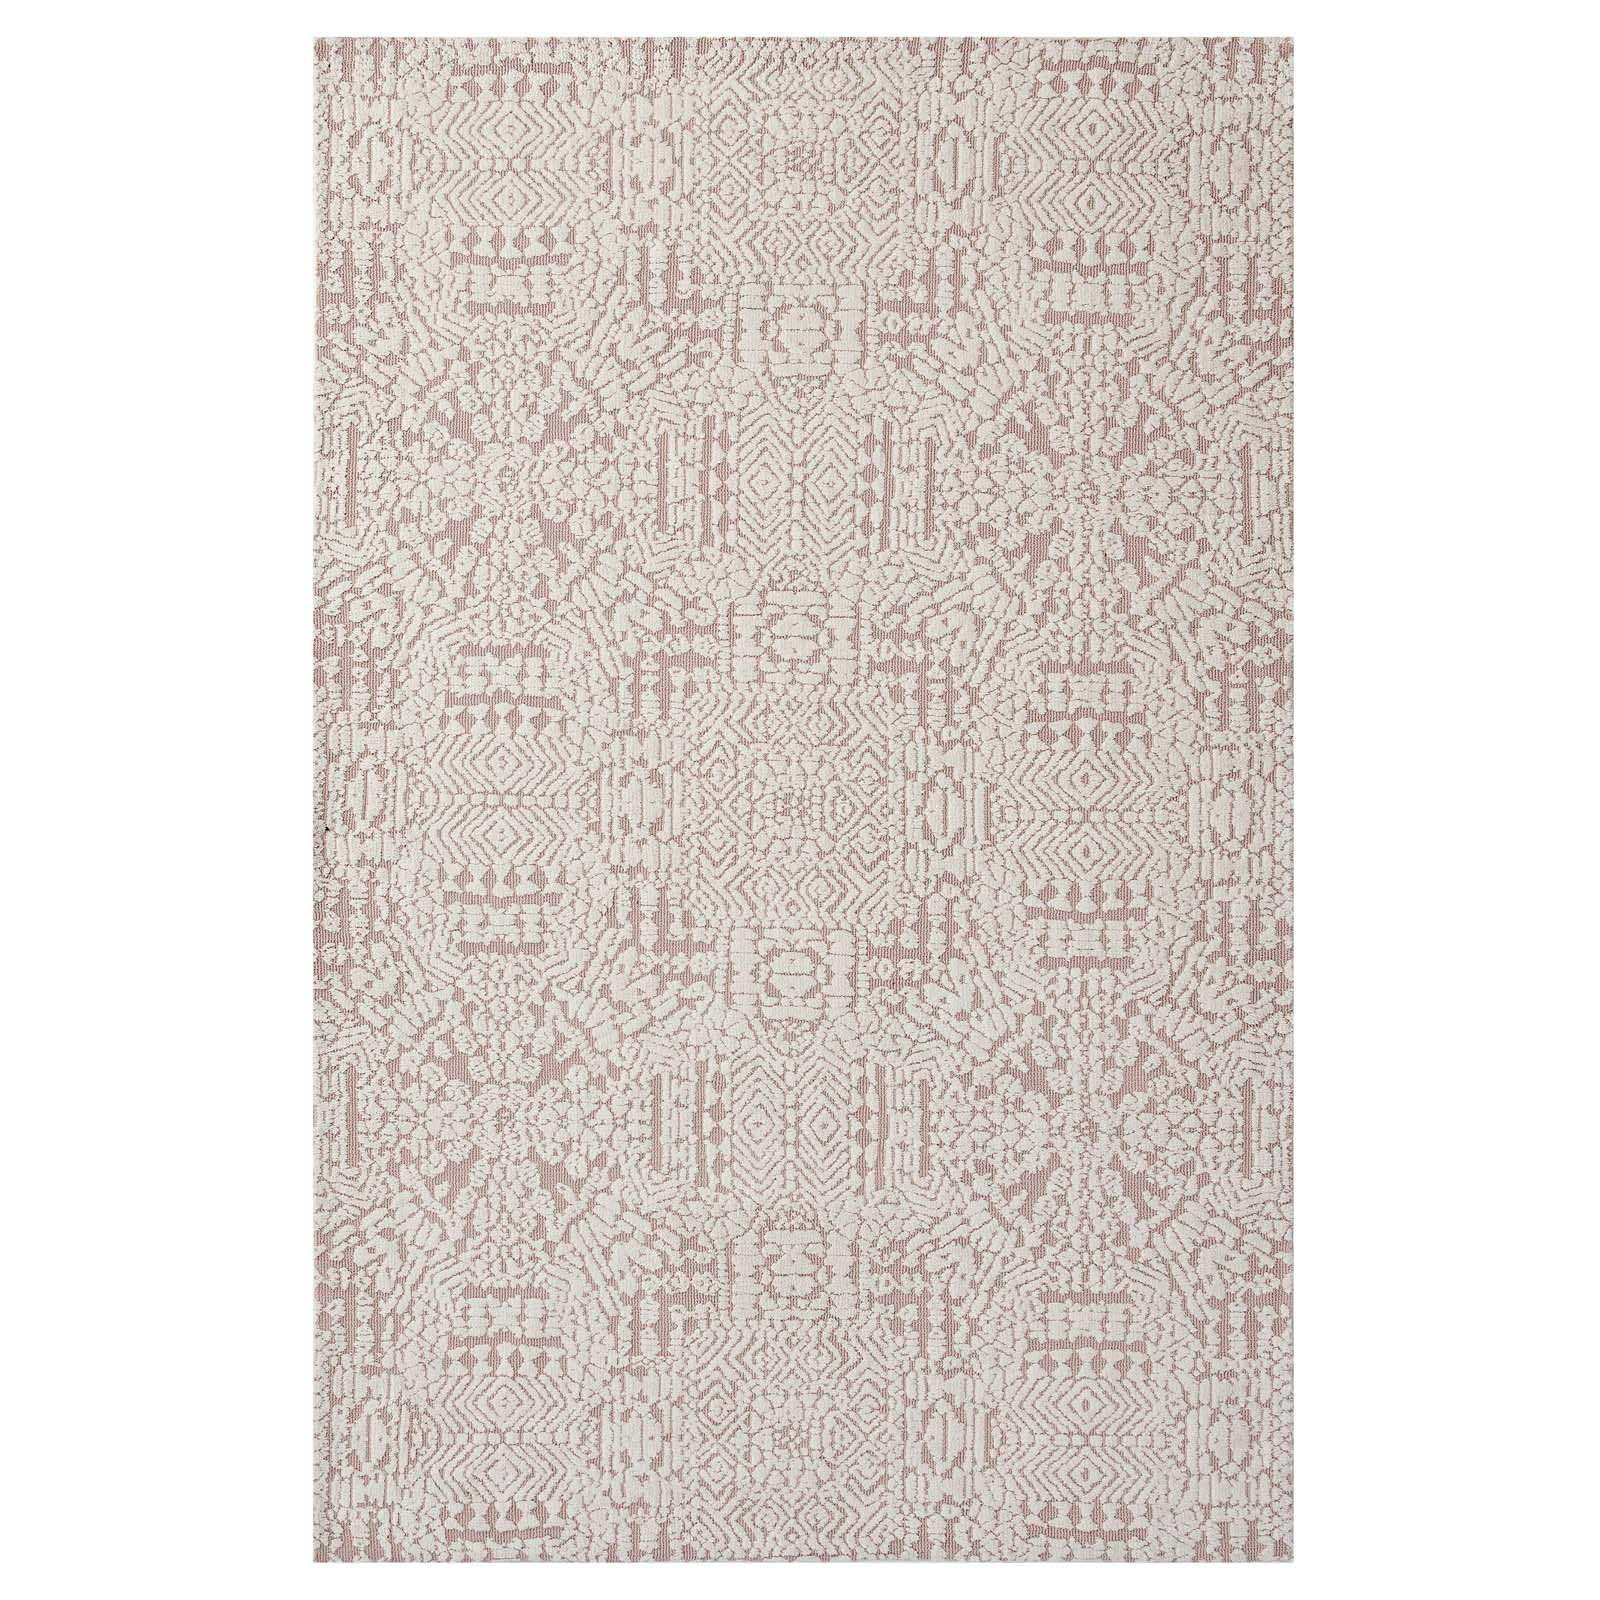 Javiera Contemporary Moroccan 5x8 Area Rug Ivory and Cameo Rose R-1018B-58